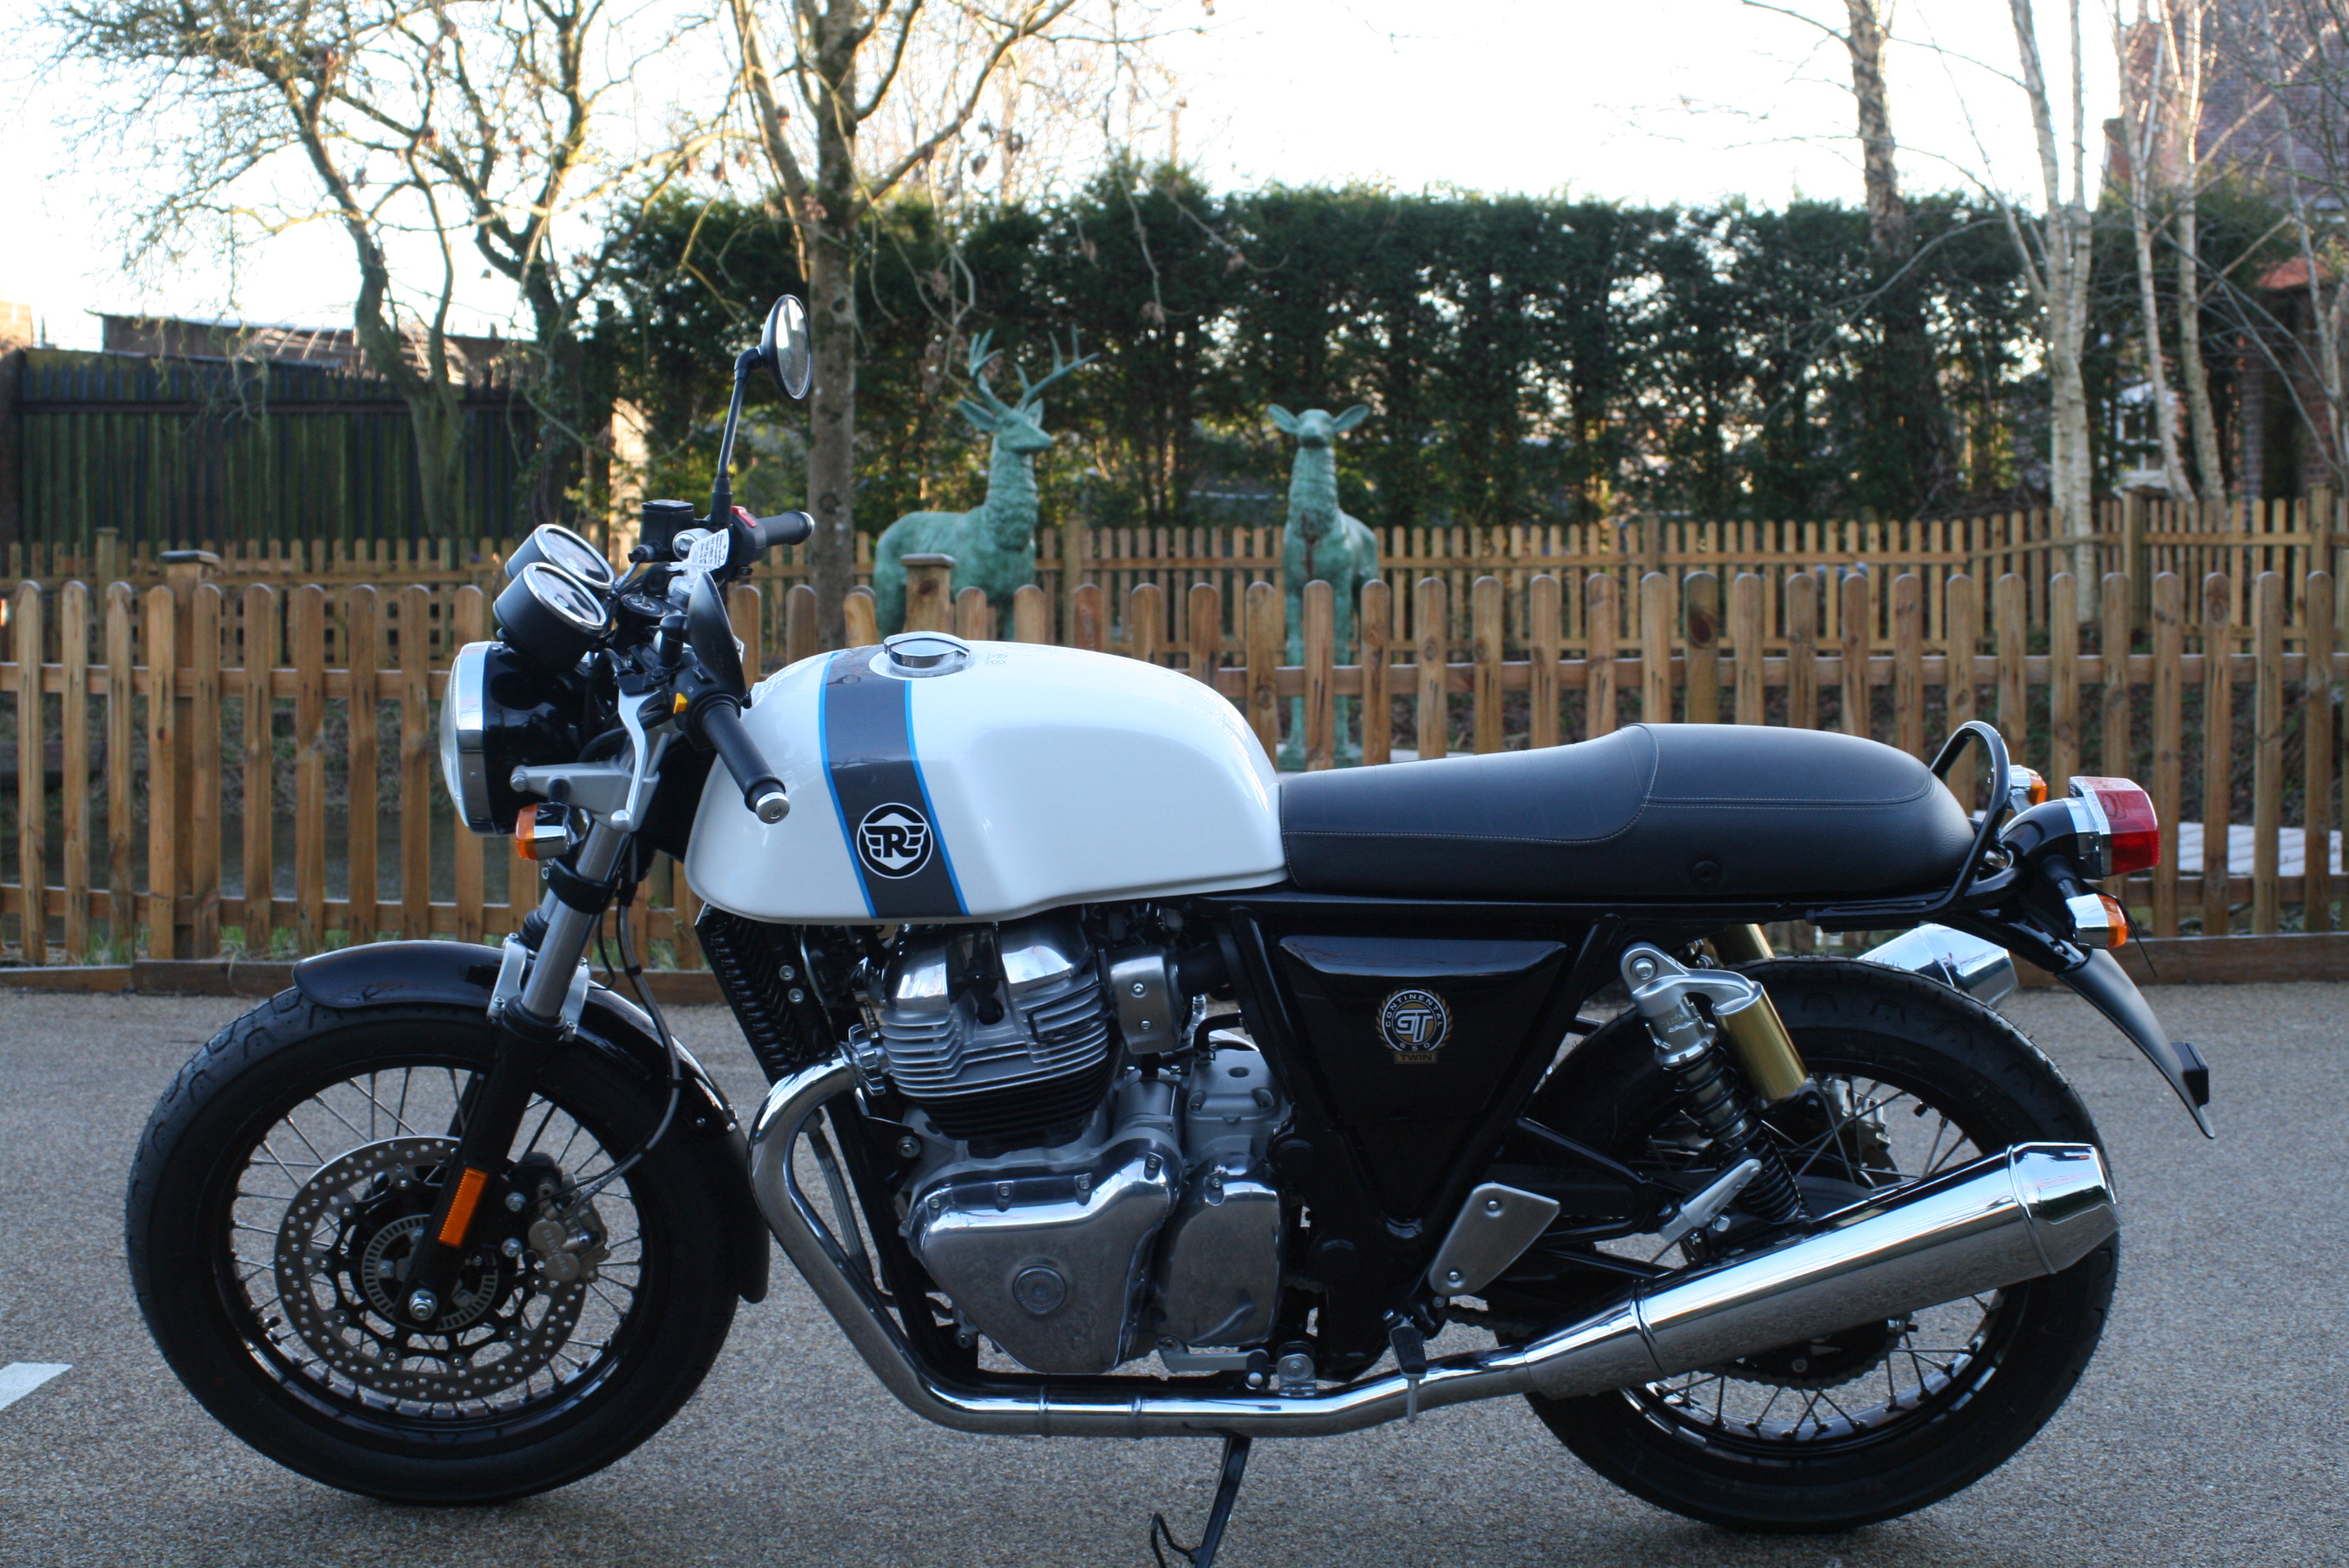 THE RE CONTINENTAL GT 650 TWIN HAS ARRIVED!!